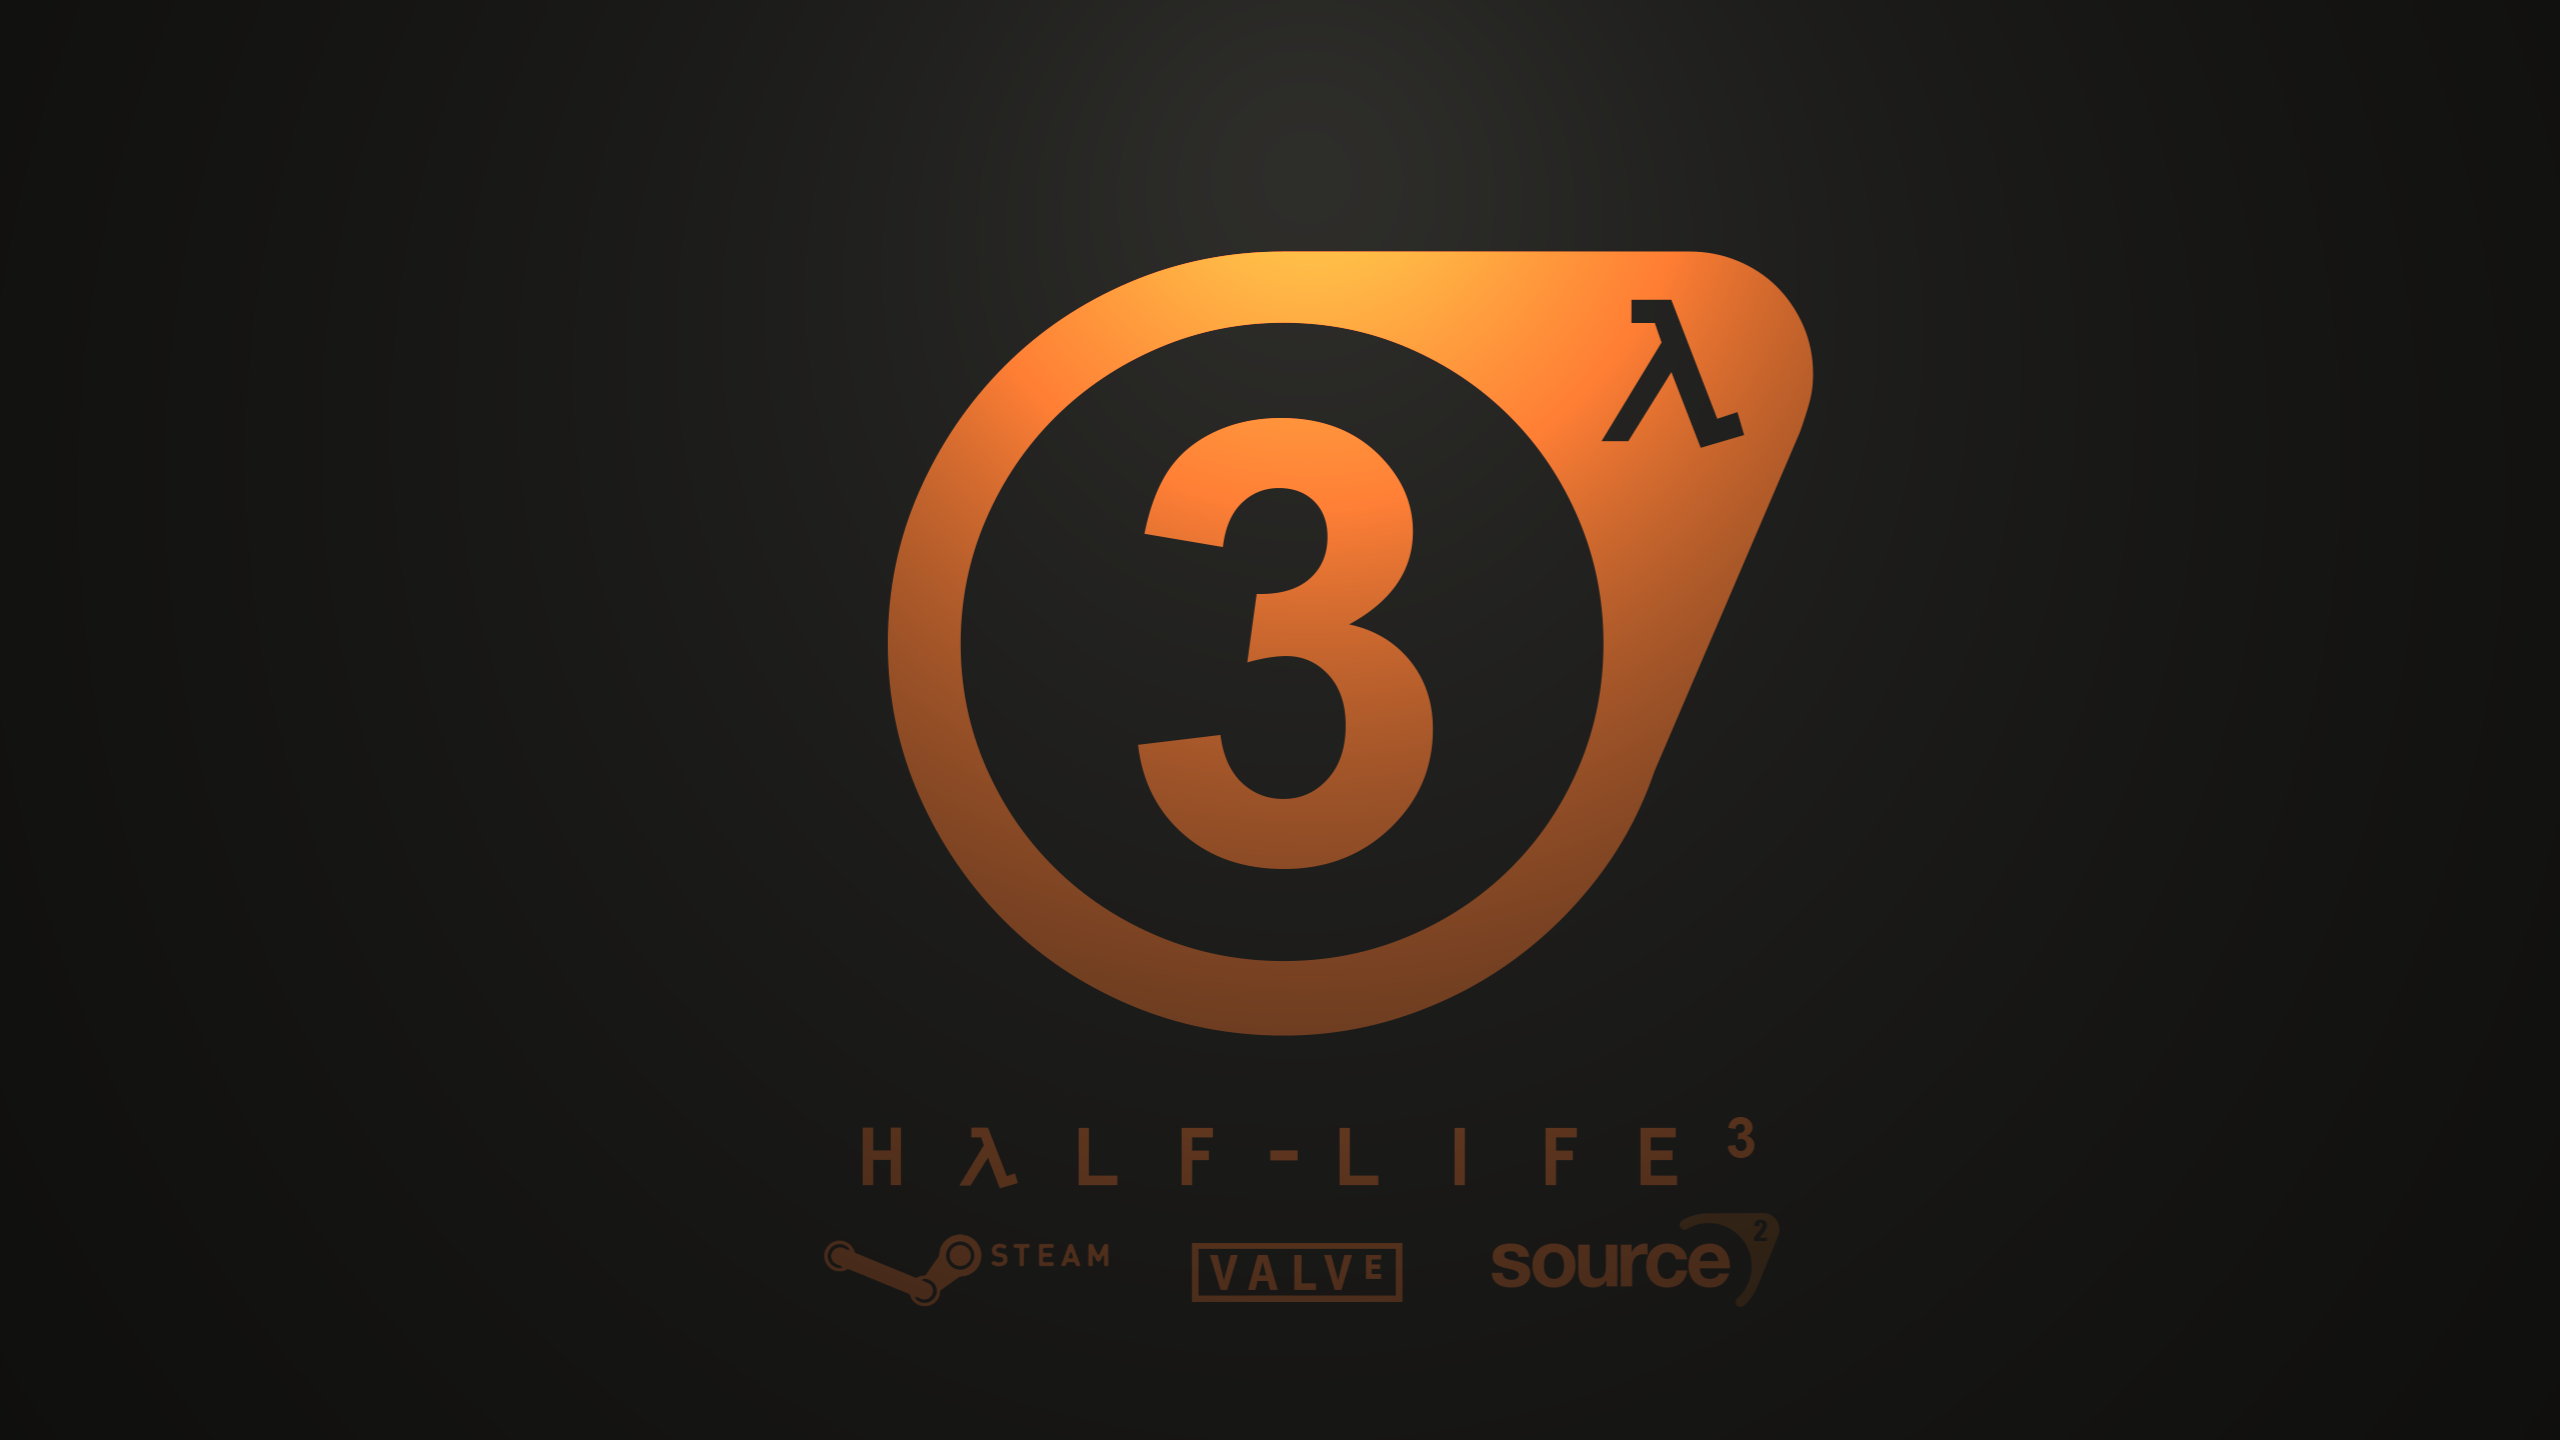 Half-Life 3 Logo Wallpaper